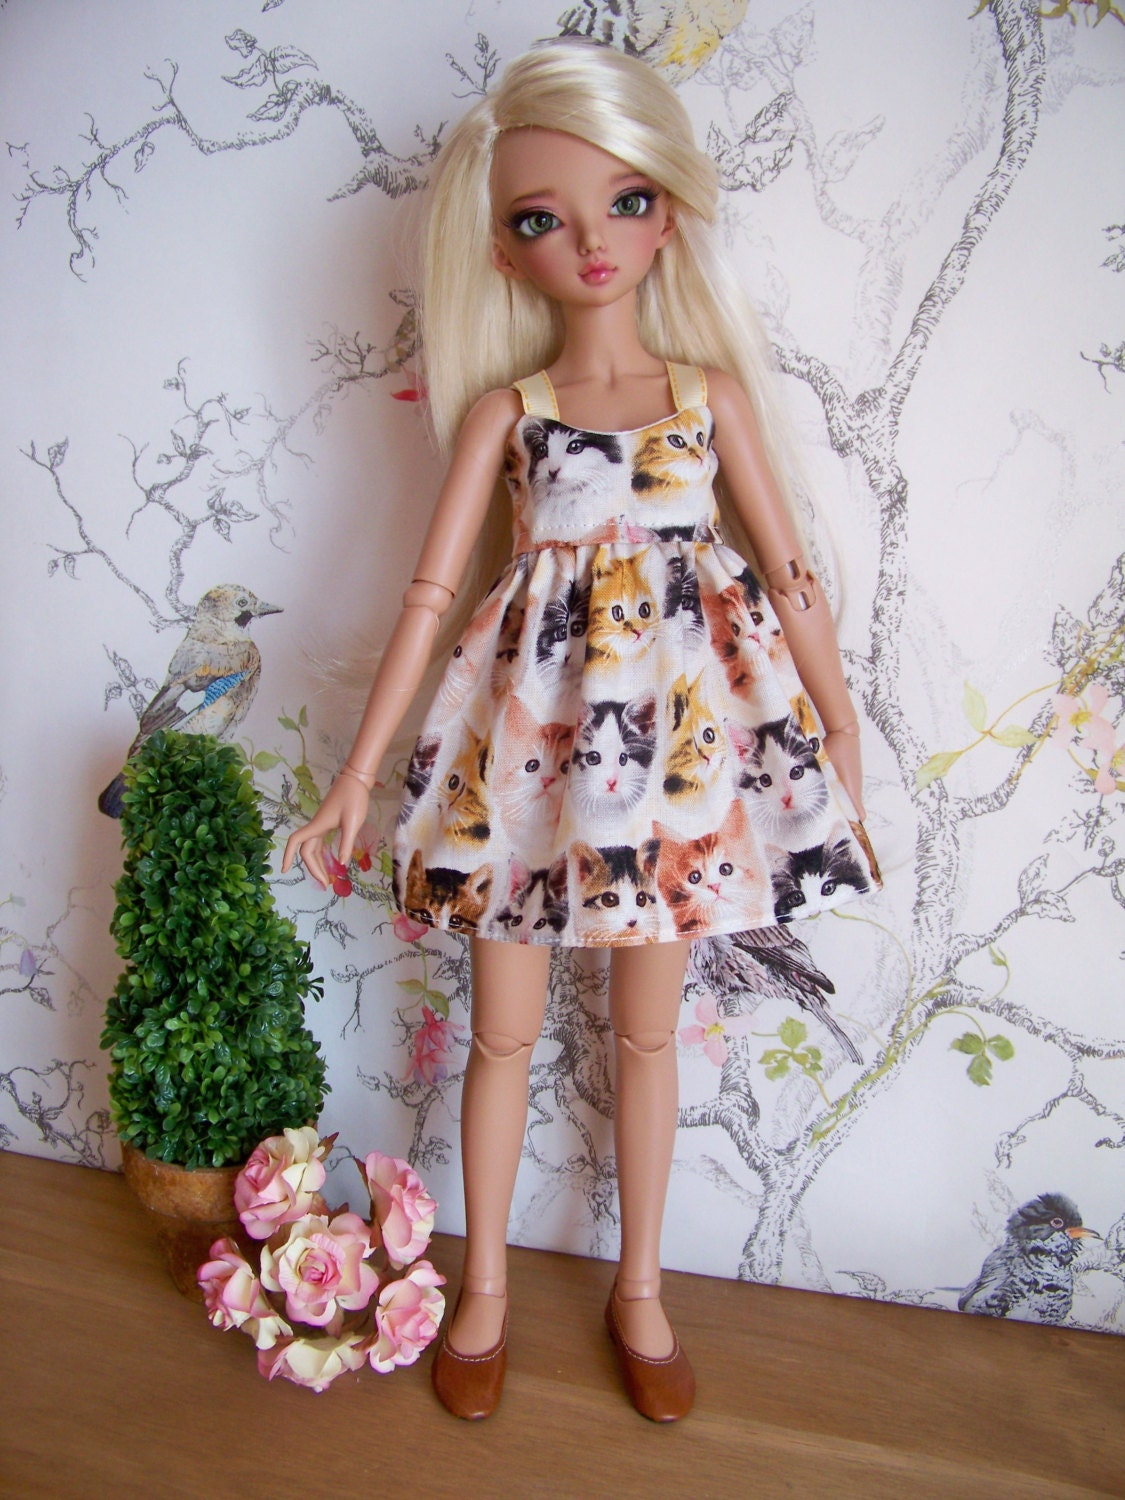 Cats Kittens Print dress for Minifee Msd BJD Ellowyne Evangeline Tonner Cami   dolls